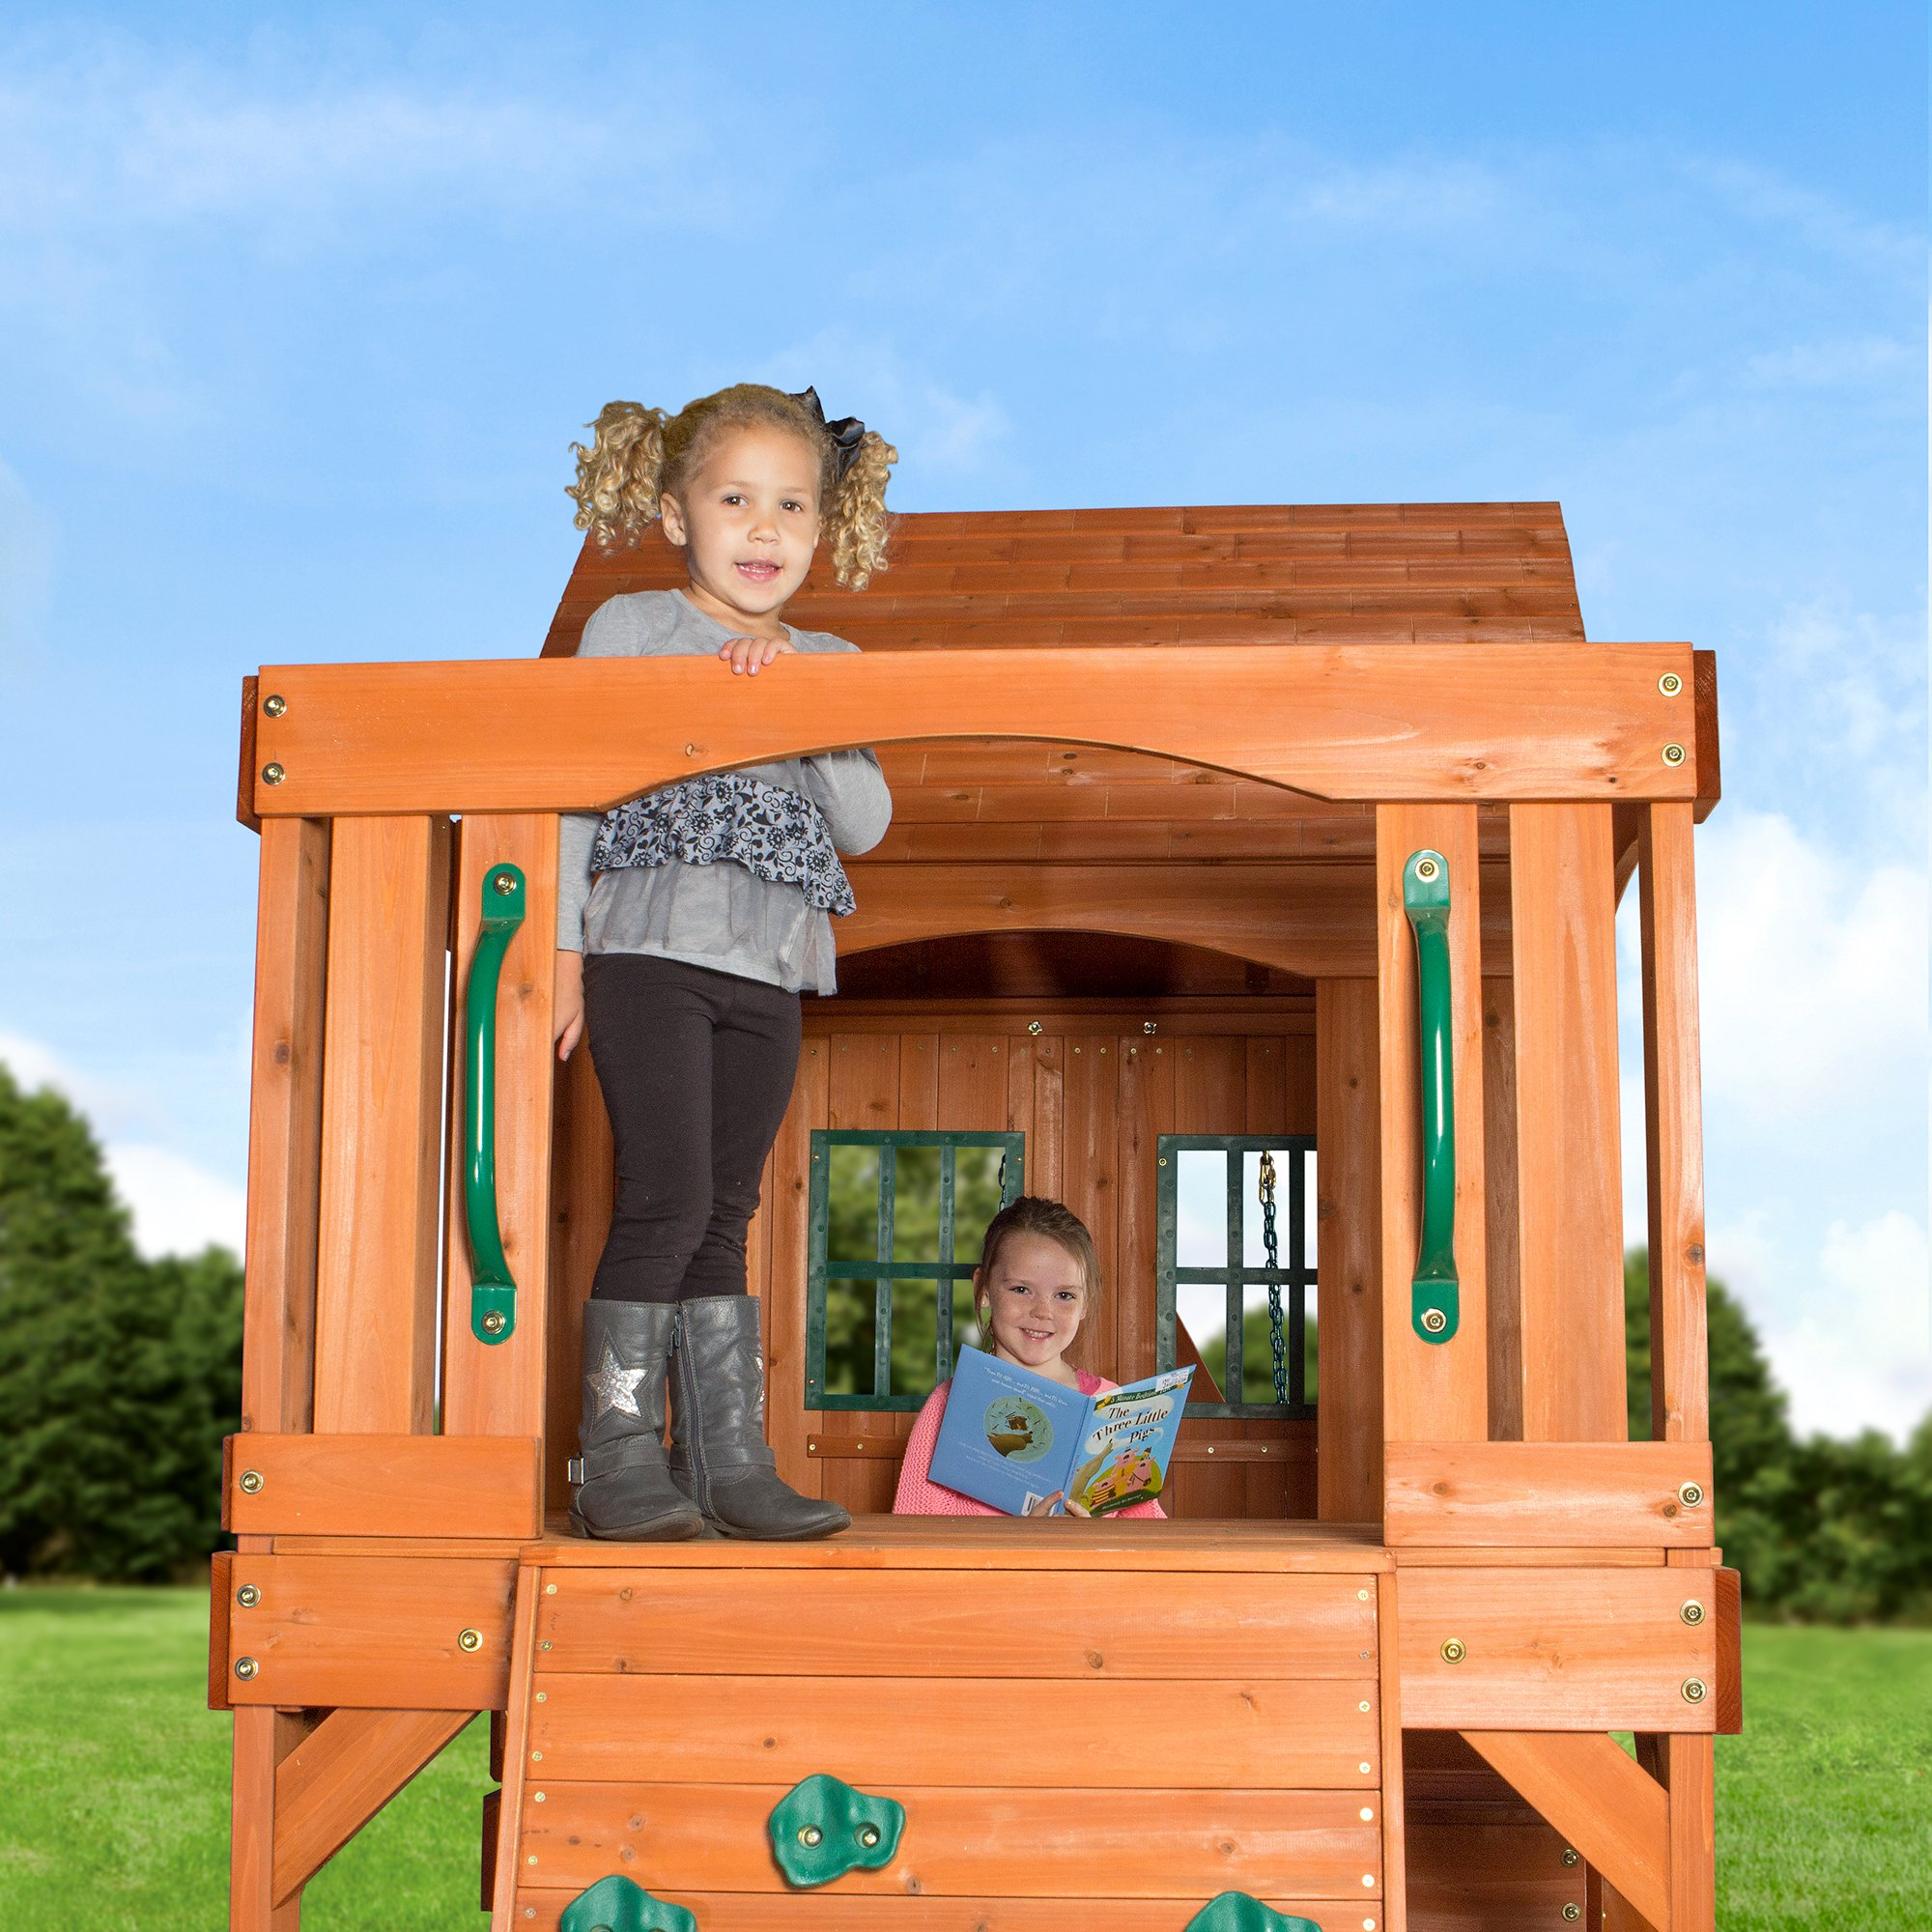 Backyard Discovery Pacific View All Cedar Wood Playset Swing Set by Backyard Discovery (Image #6)